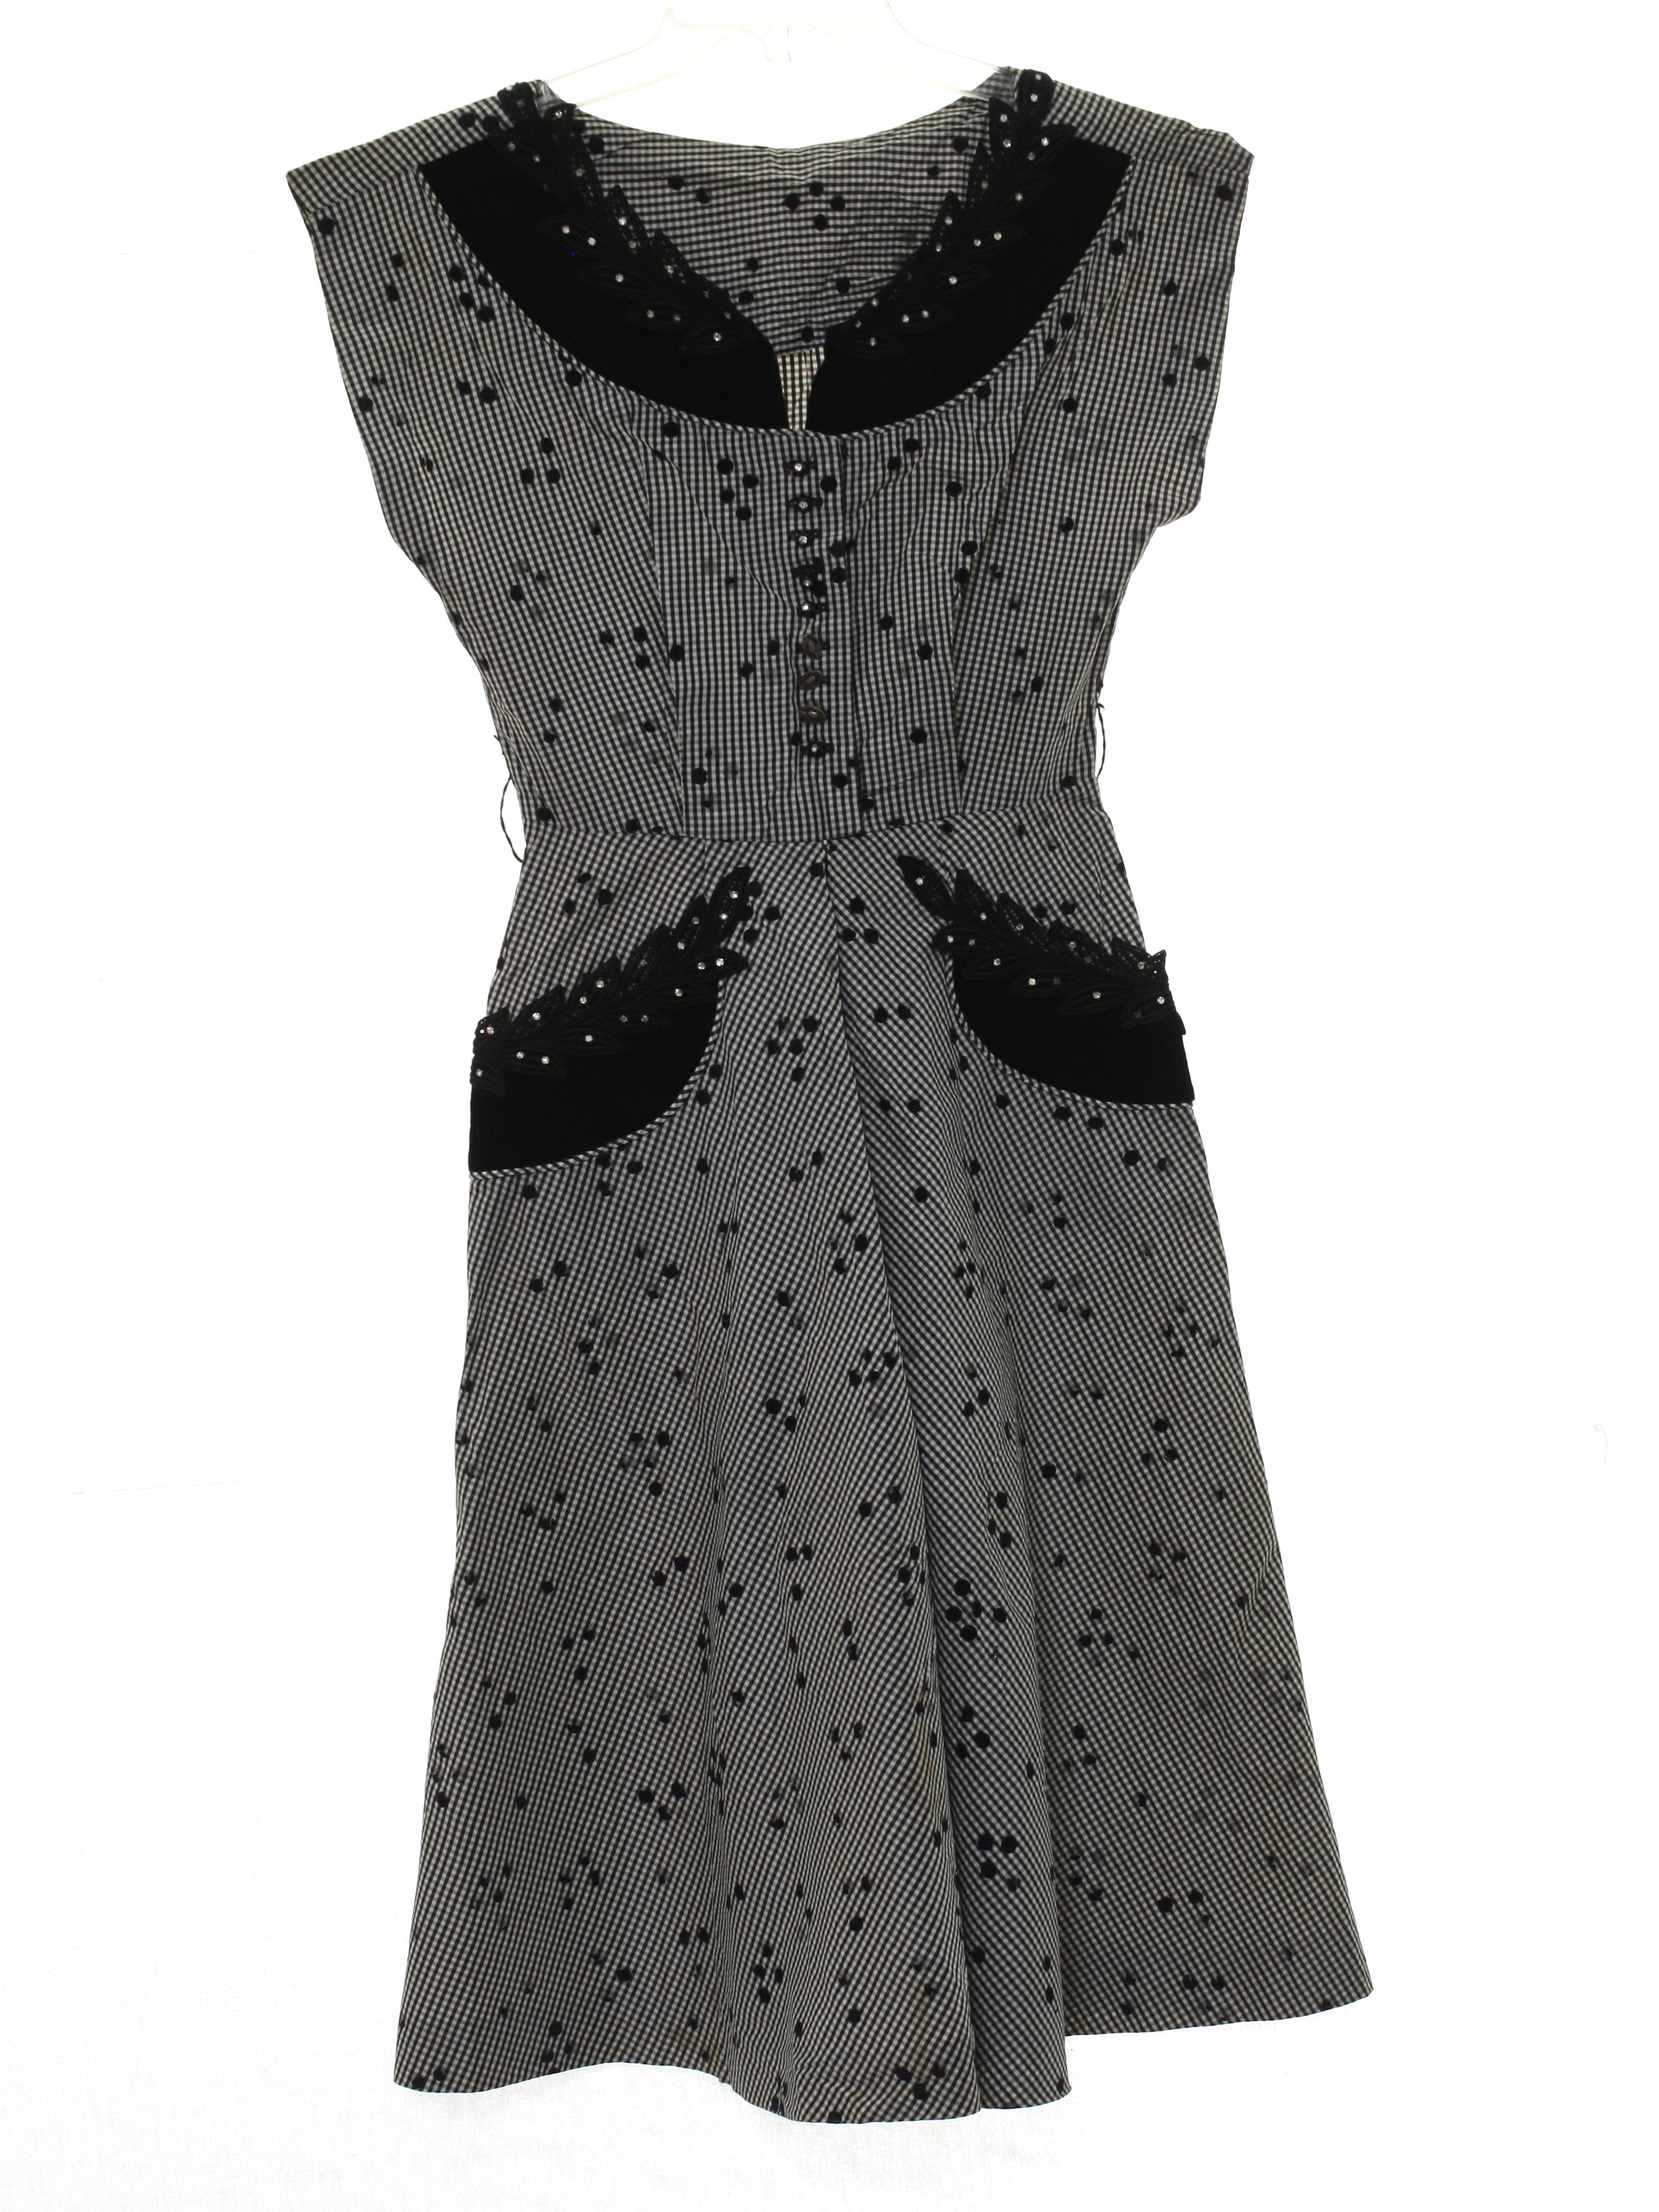 Forties Cocktail Dress: 40s style (made in 50s) -No Label- Petite ...